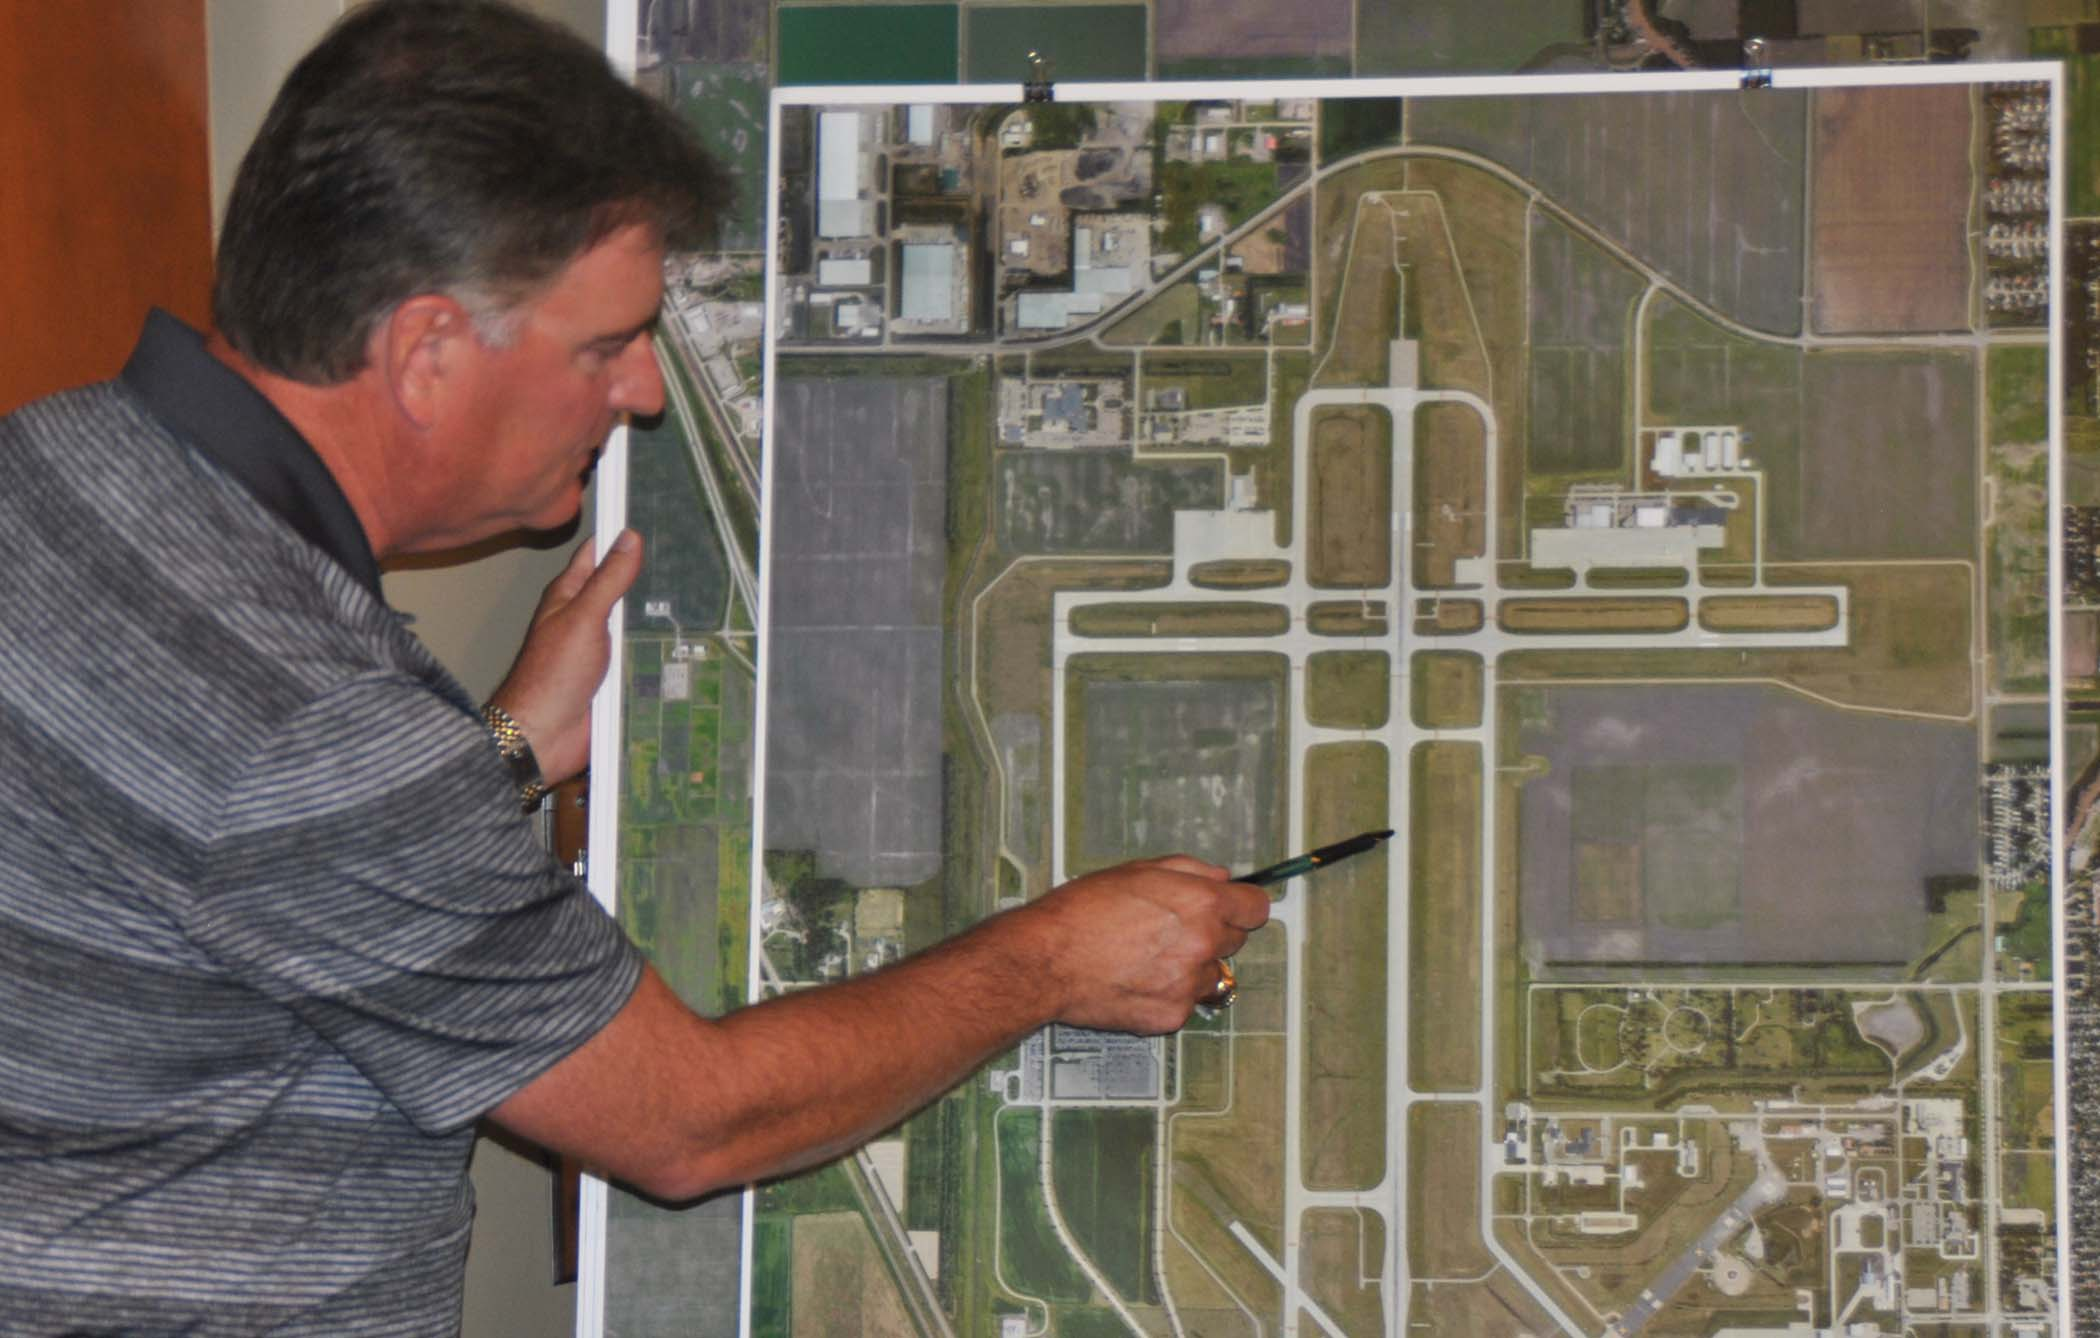 Airpot Authority Executive Director Shawn Dobberstein points to where the accident occurred - photo by C.S. Hagen